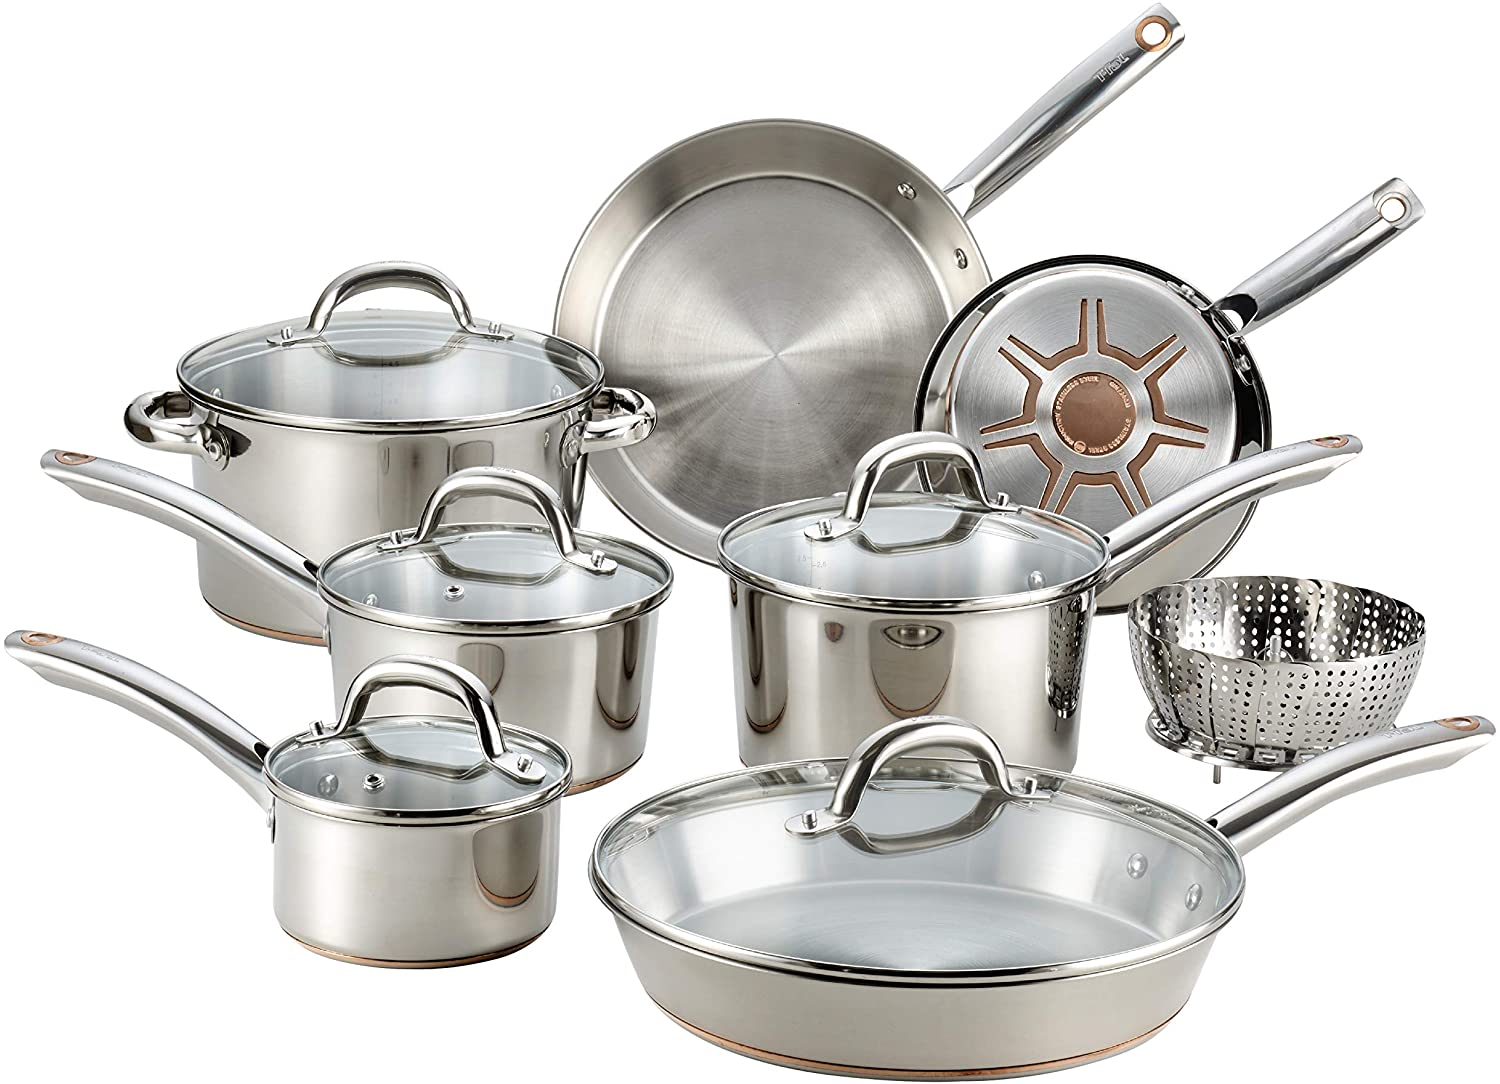 T-fal Ultimate Stainless Steel Copper Bottom Cookware Set